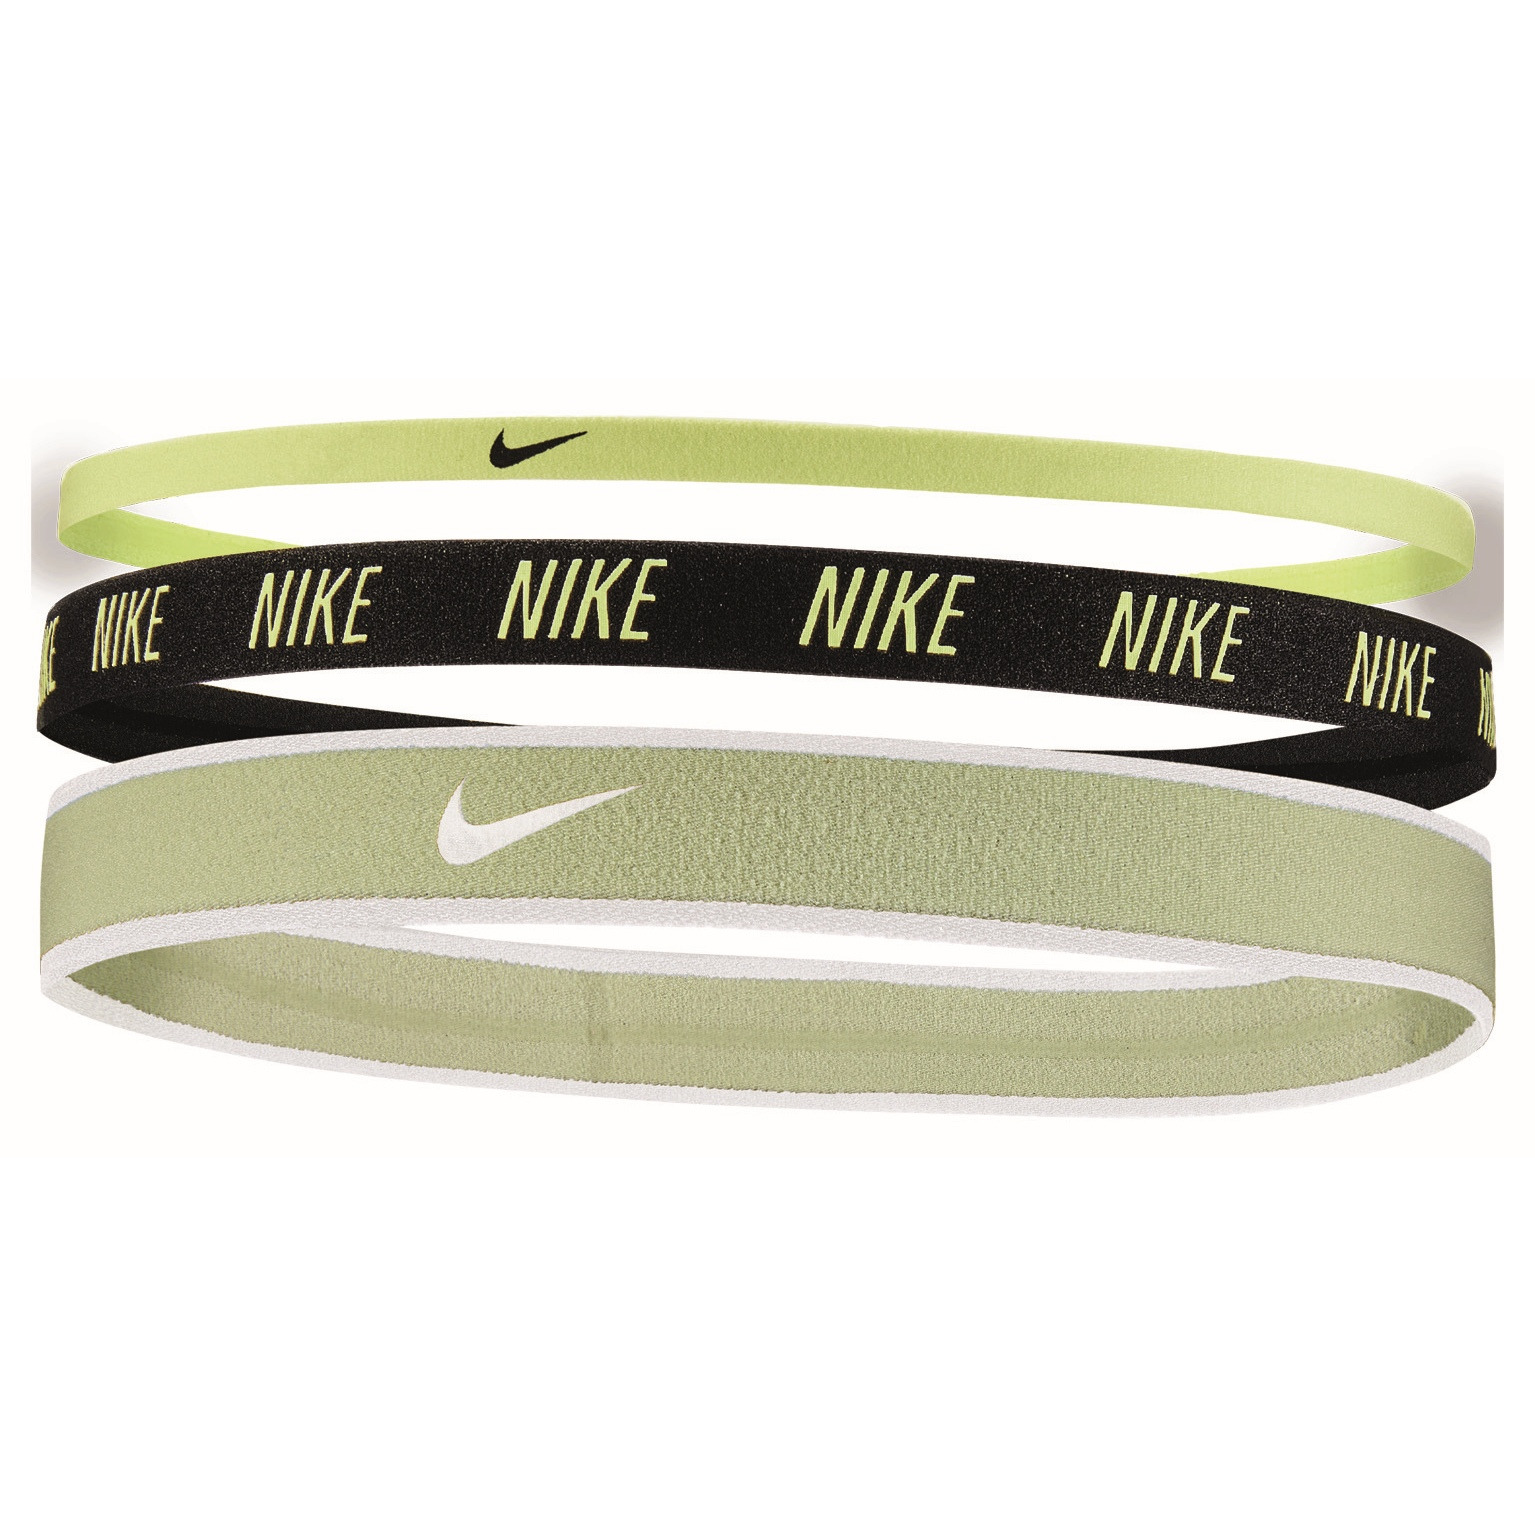 Nike Mixed Width Cinta del pelo - 3 Pares - lime ice/black/lime ice 384